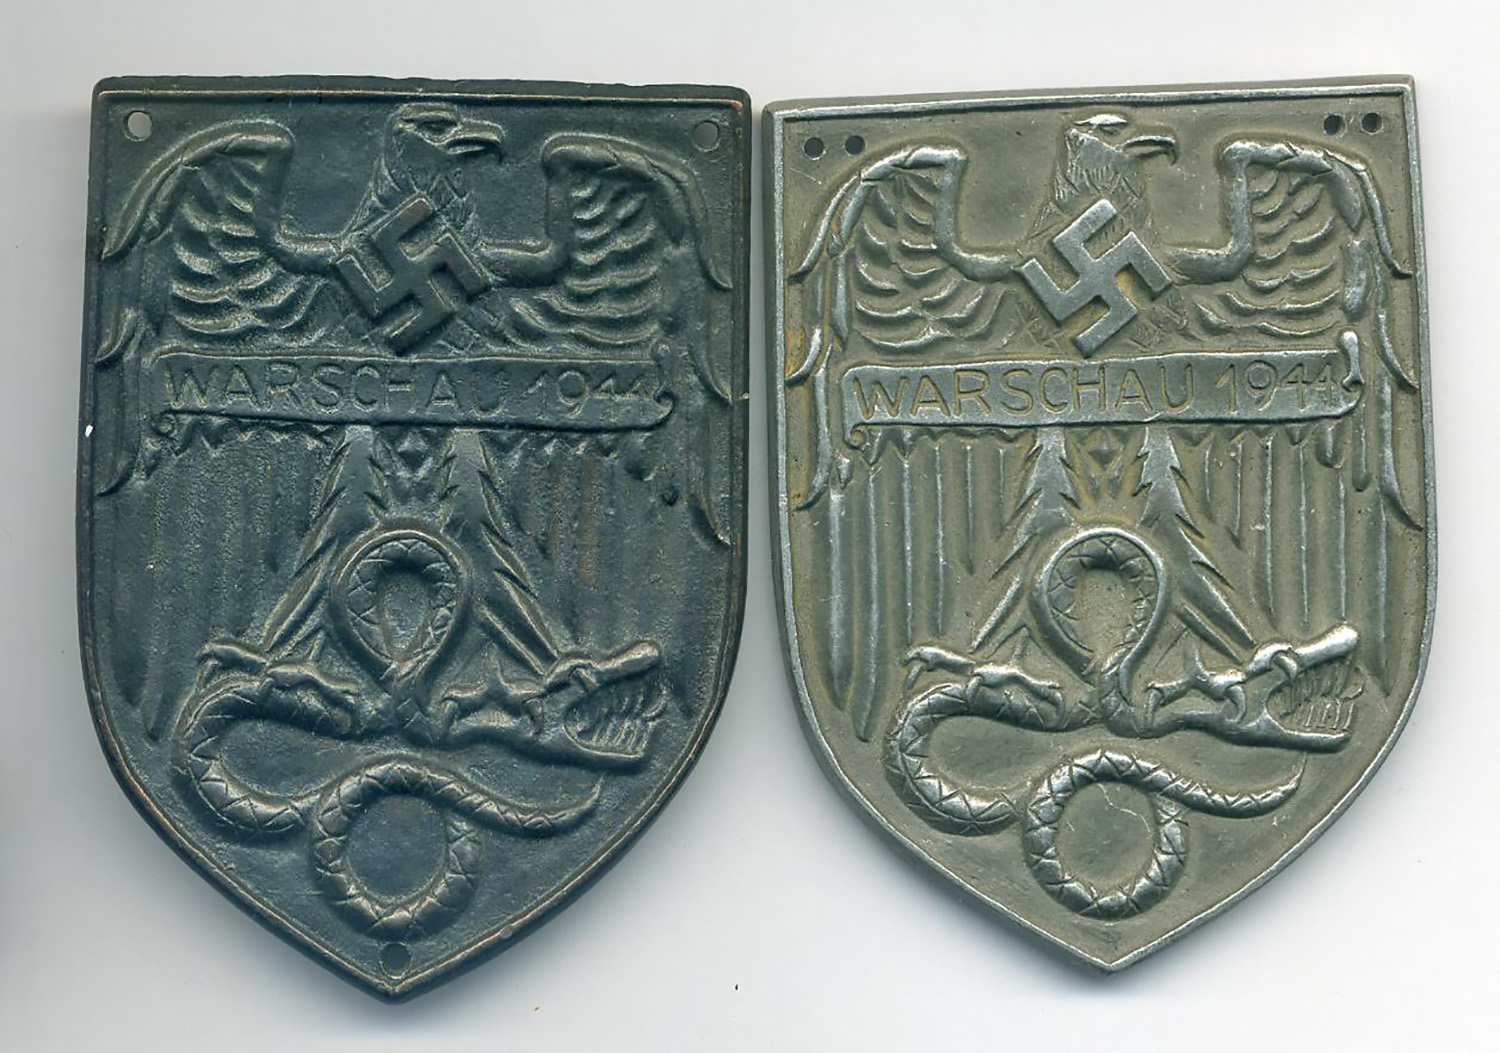 A pair of Warsaw shields